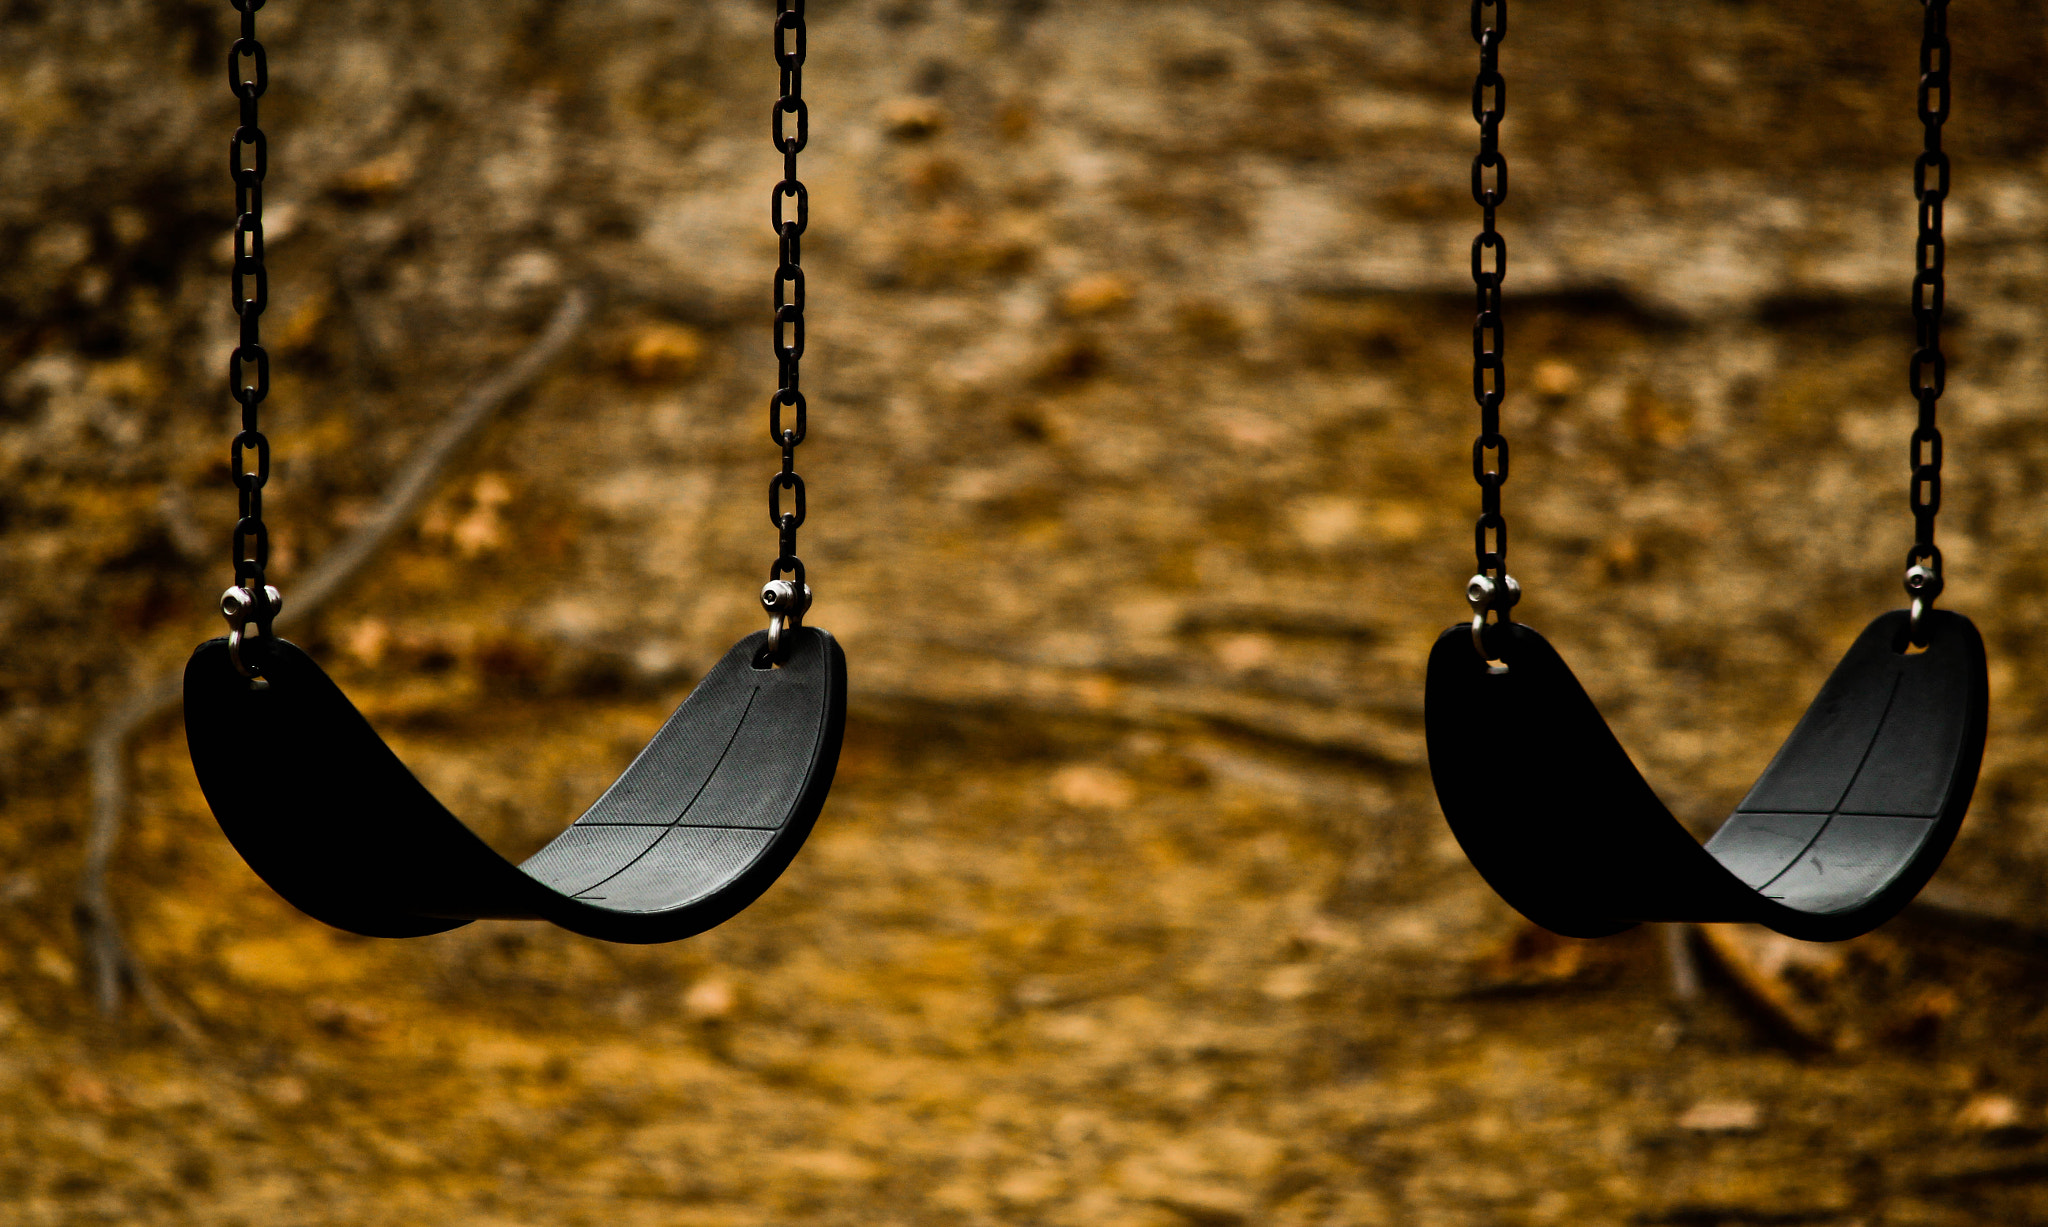 Photograph Swing by Naveen Pal on 500px